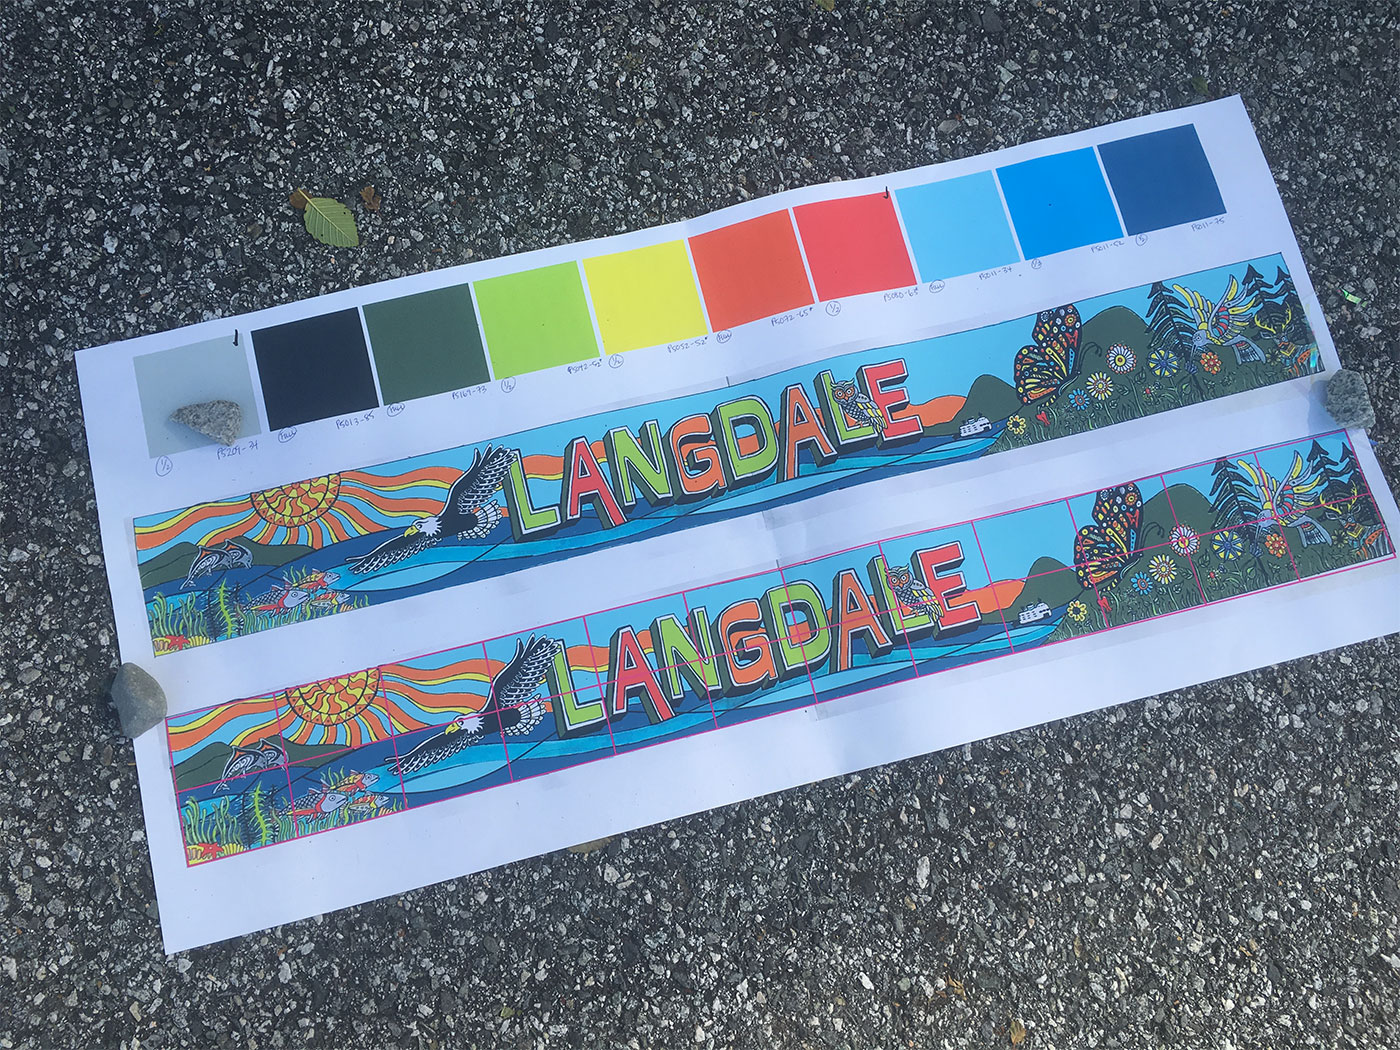 Design for Langdale School Mural collaboration with the students and parents